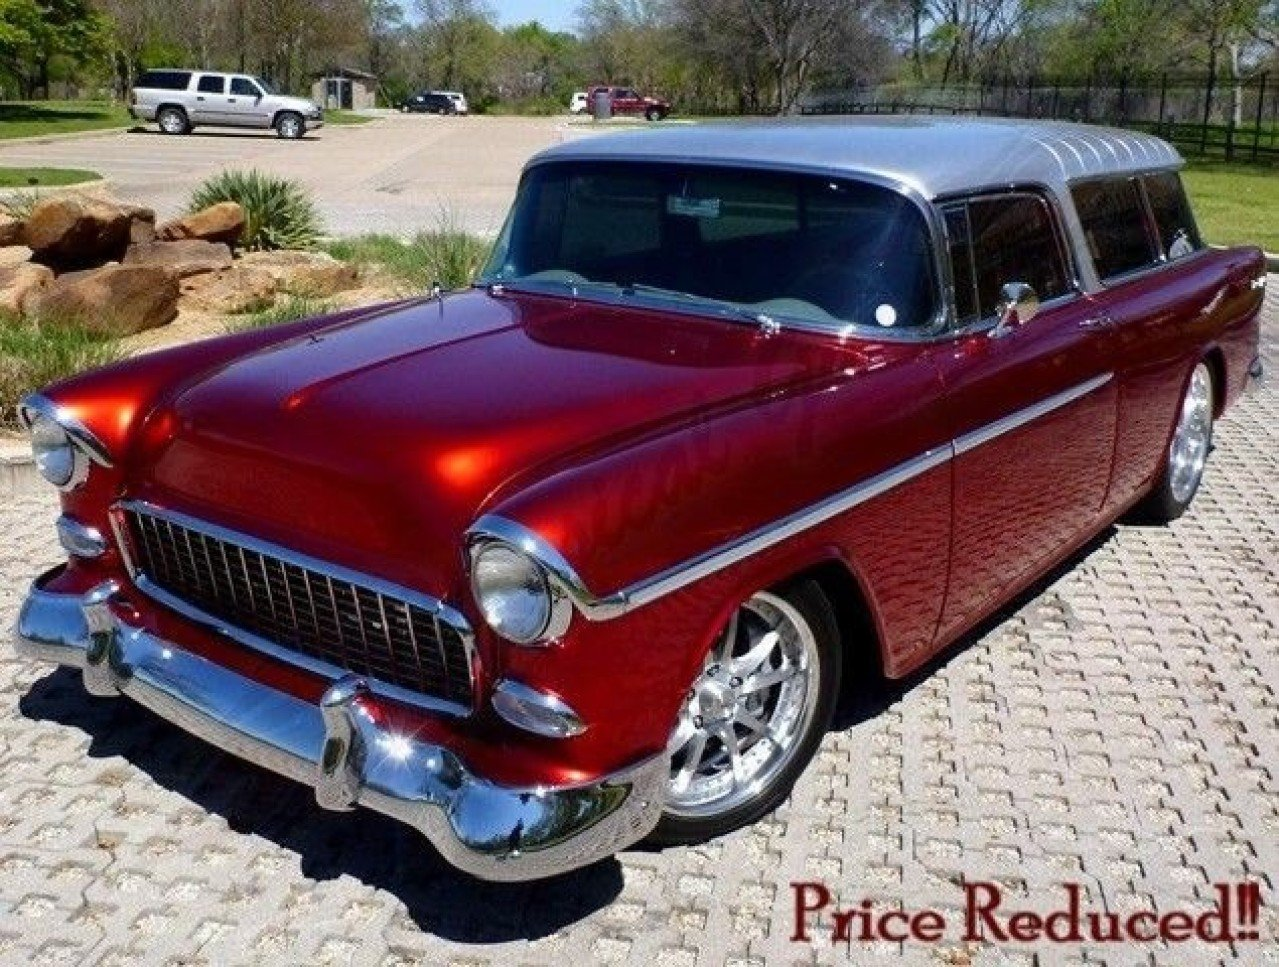 Autotrader Muscle Cars For Sale >> 1955 Chevrolet Nomad for sale near Arlington, Texas 76001 - Classics on Autotrader